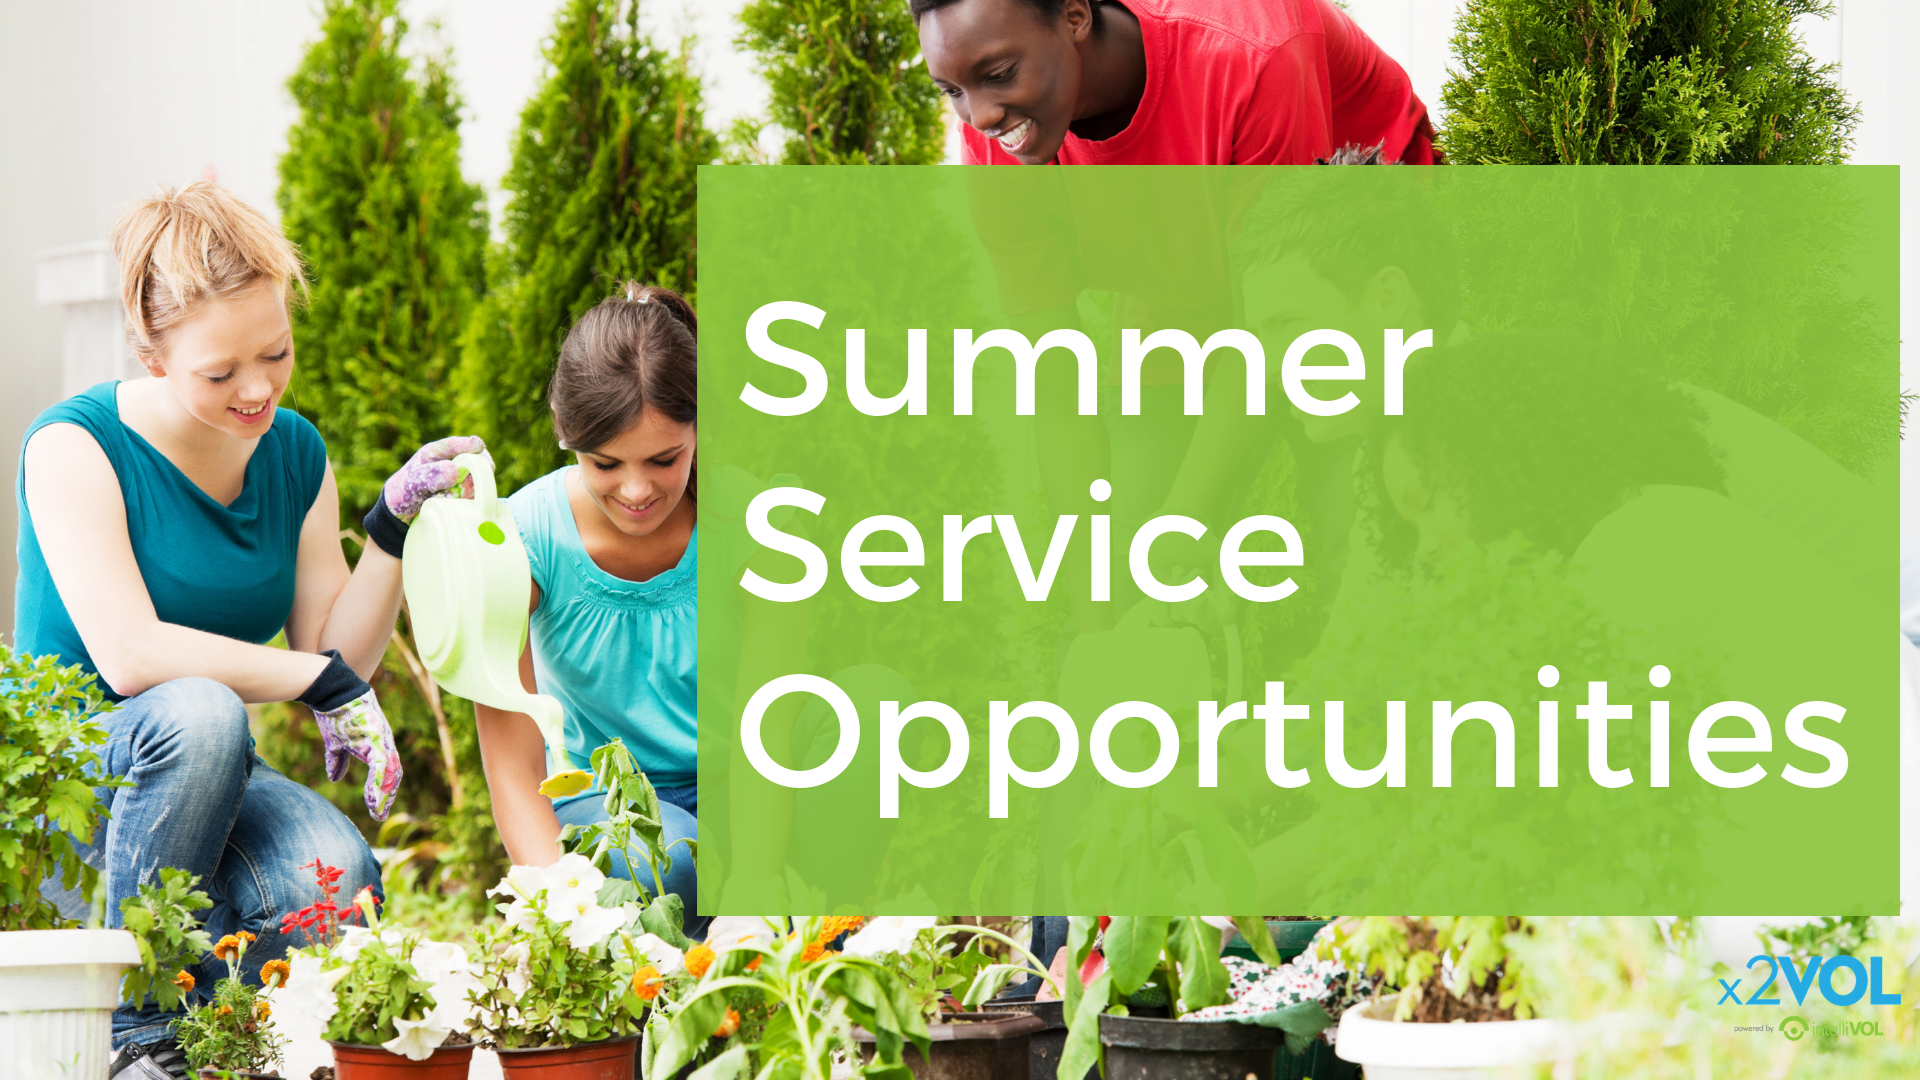 Summer Service Opportunities